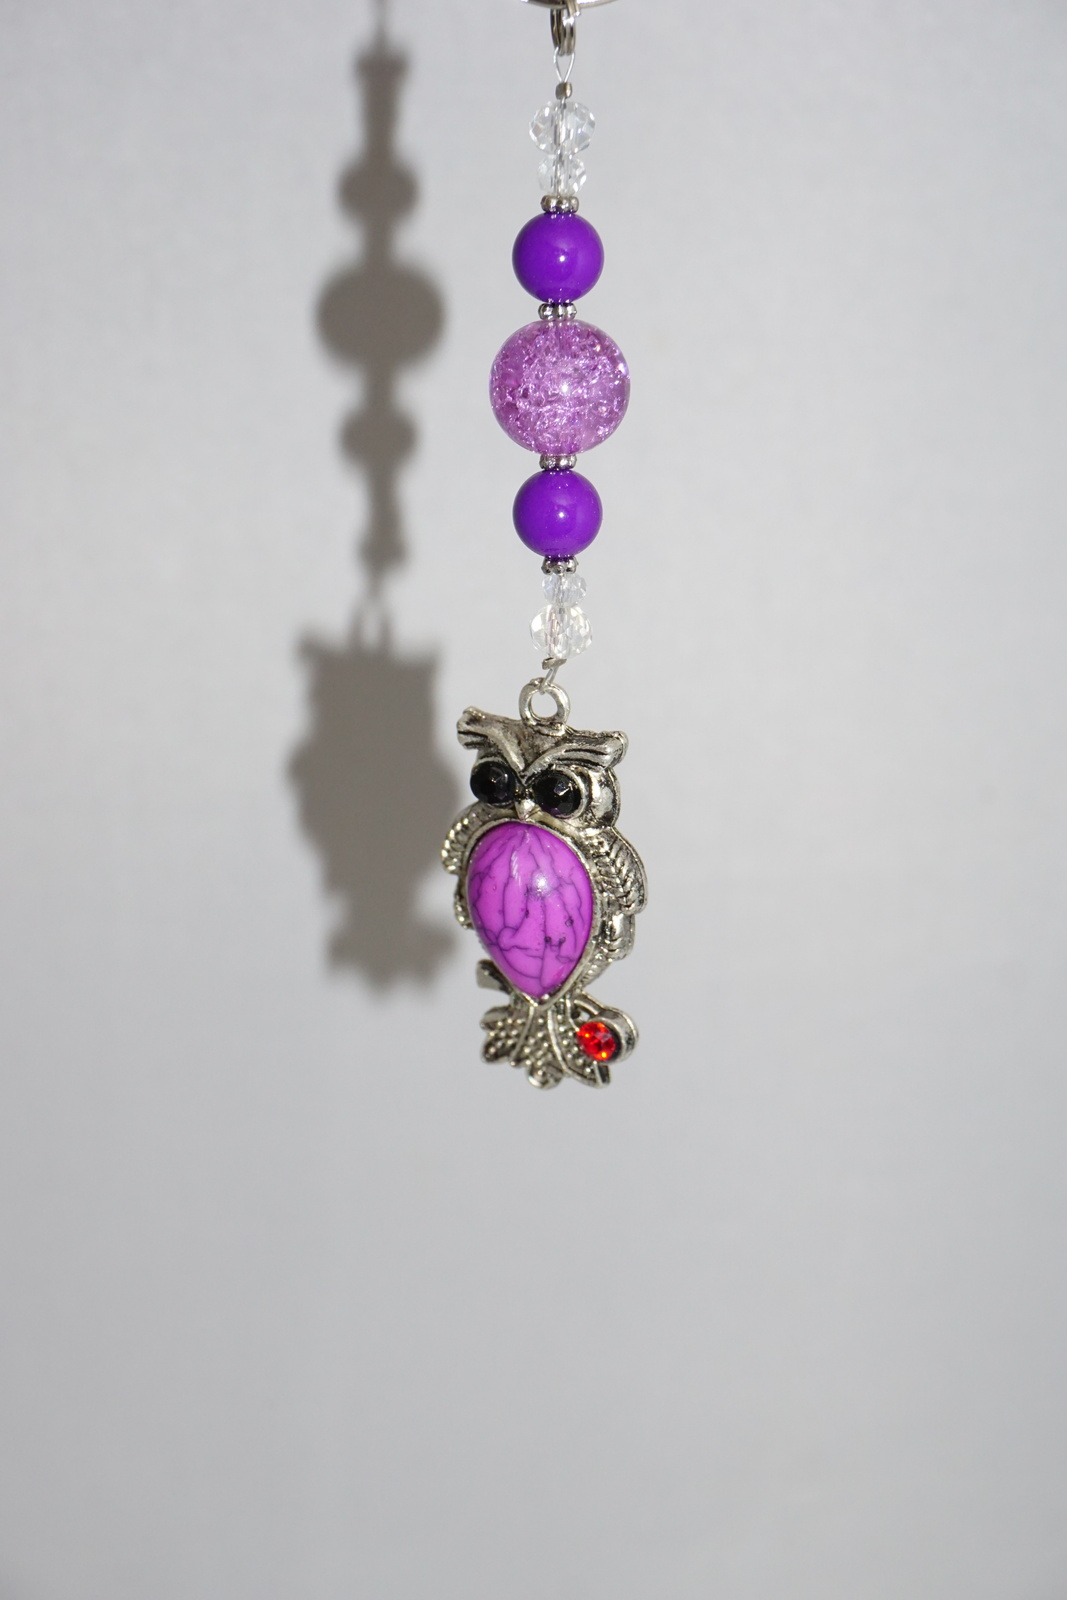 Purple Owl Keychain Perfect Owl Gift Ideas And 32 Similar